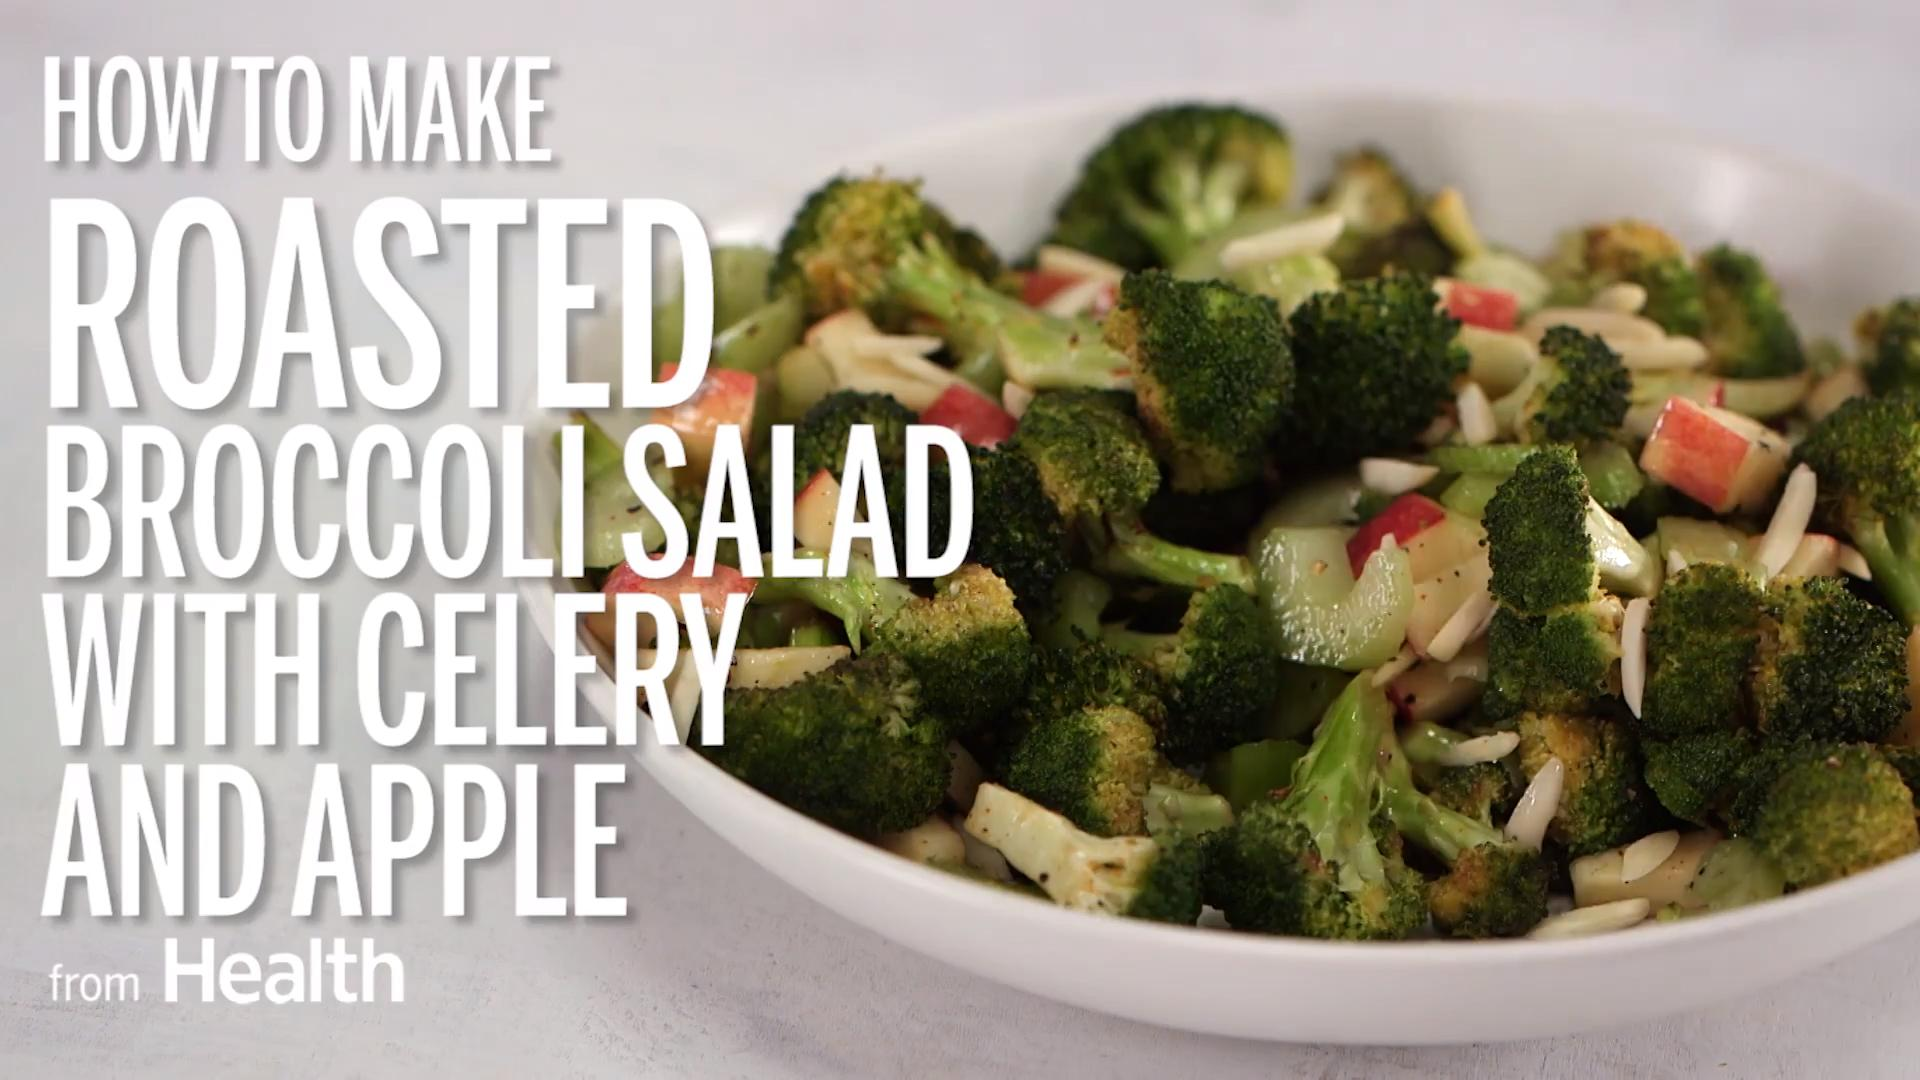 Roasted Broccoli Salad With Celery and Apple